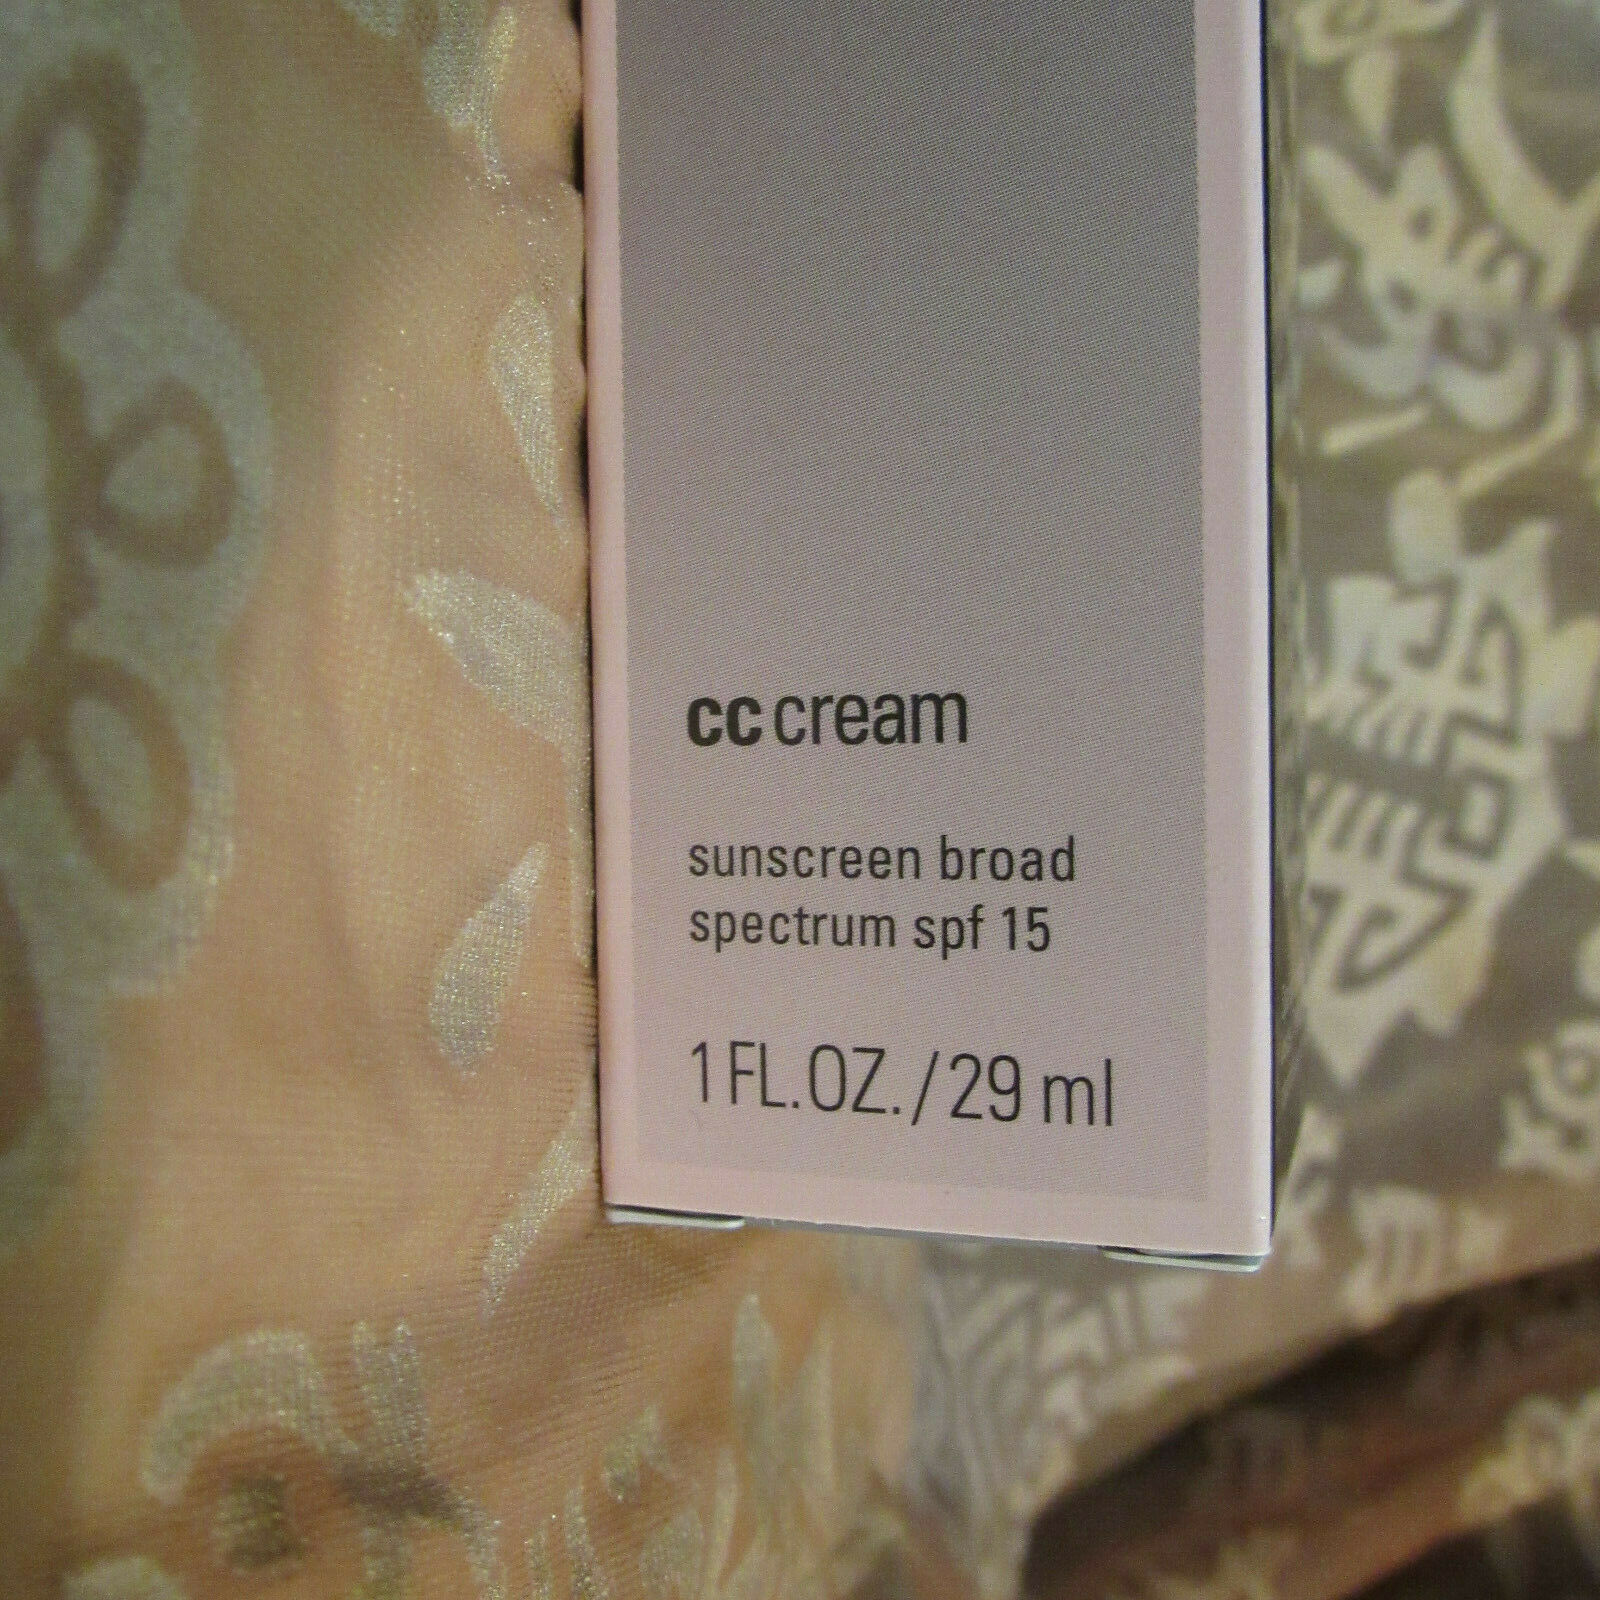 Mary Kay CC Cream SPF 15 1 Oz Sunscreen Broad Spectrum Expires 1/20 image 2